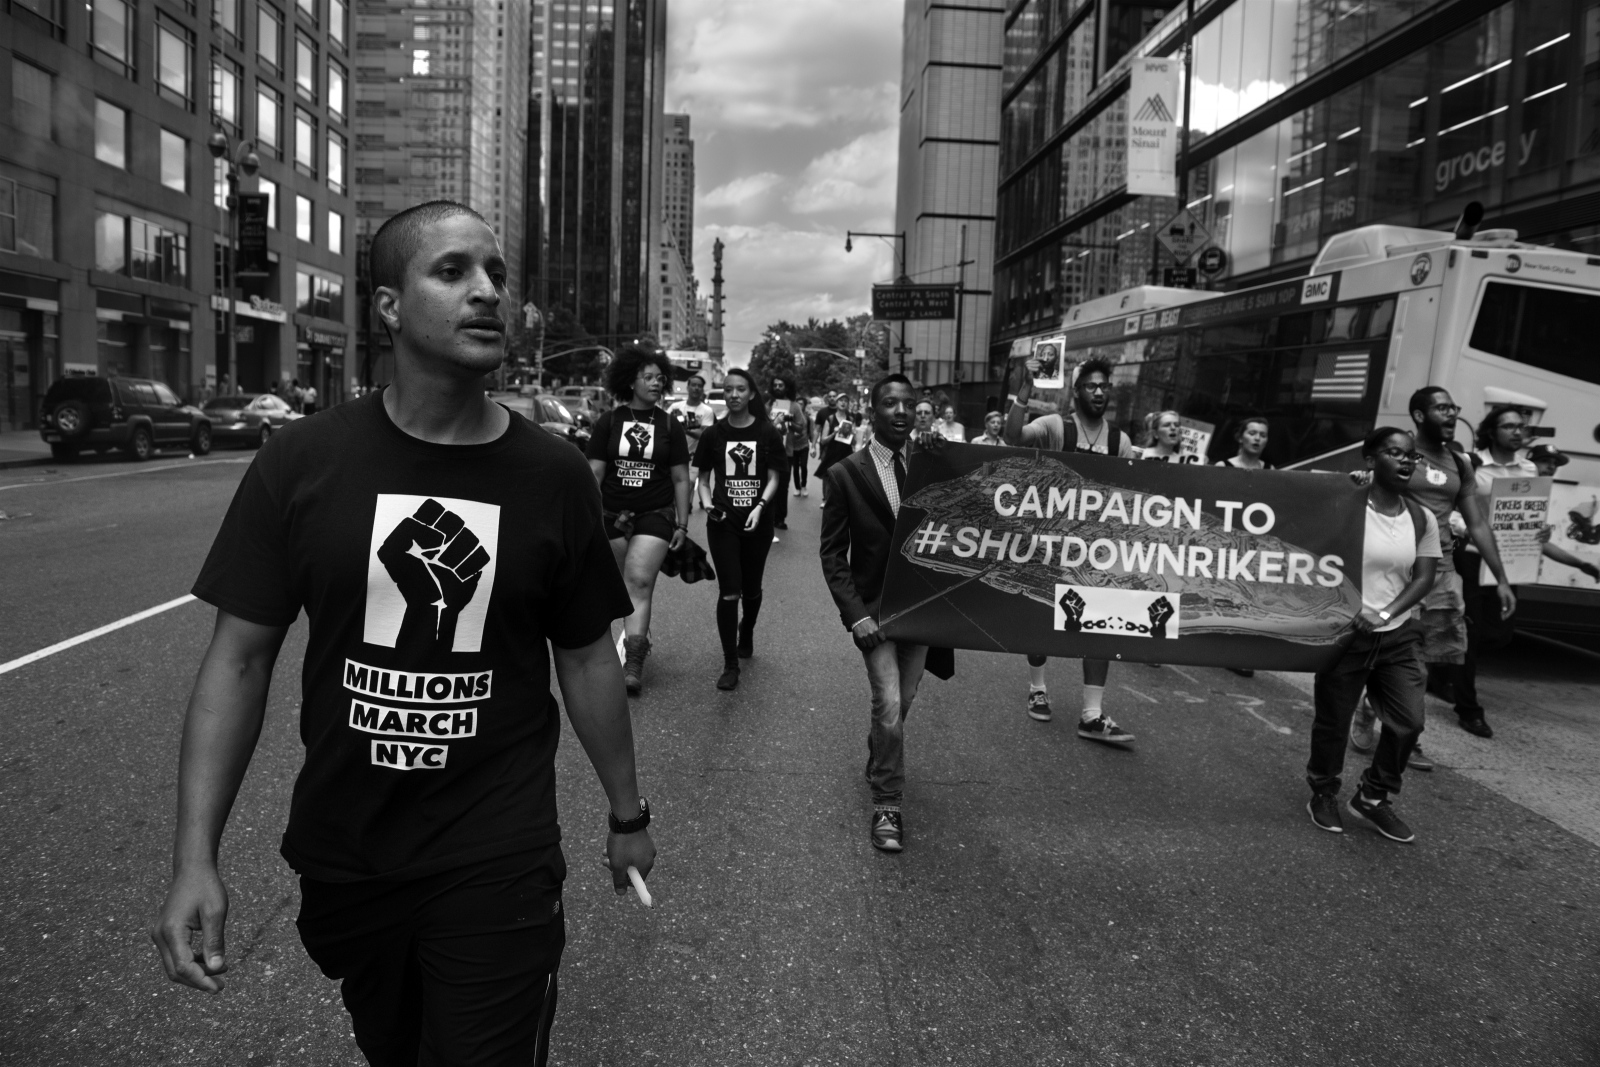 Akeem Browder and members of the Campaign to #ShutDownRikers walk down sixth avenue on the day of the first anniversary of the death of Kalief Browder, Akeem's brother.  June 6th, 2016.